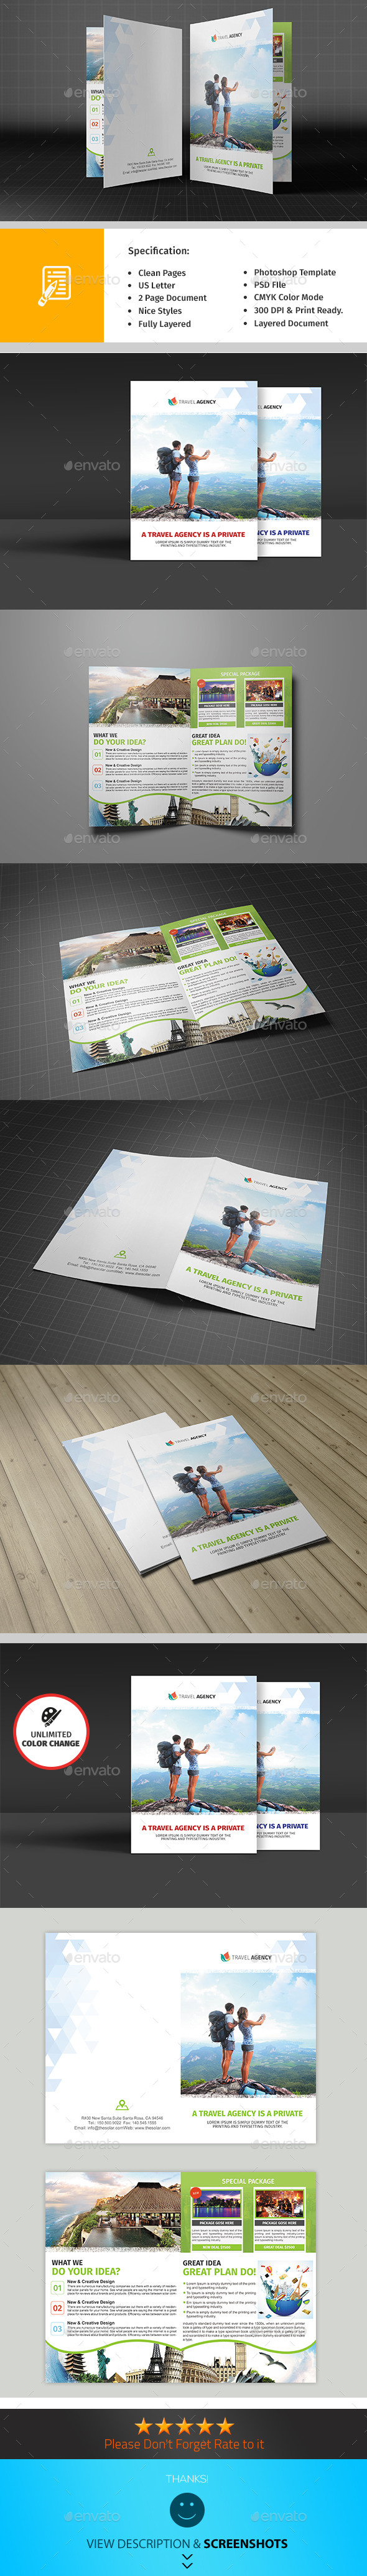 Holiday Travel Agency Bifold Brochure - Corporate Brochures